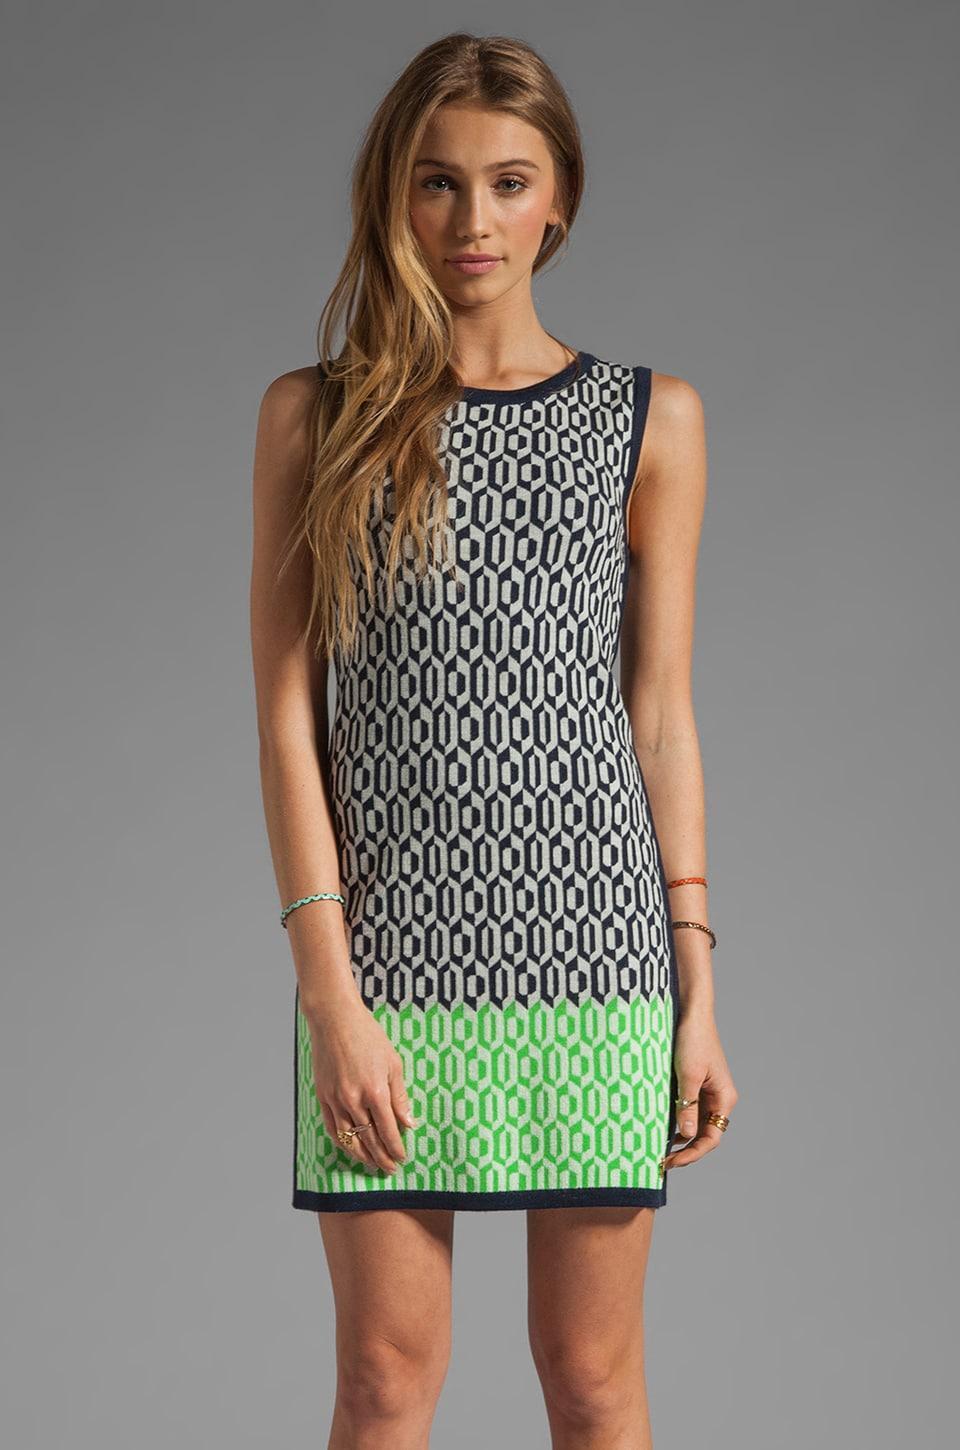 Juicy Couture Aquarius Geo Sleeveless Dress in Regal/Dark Sour Apple